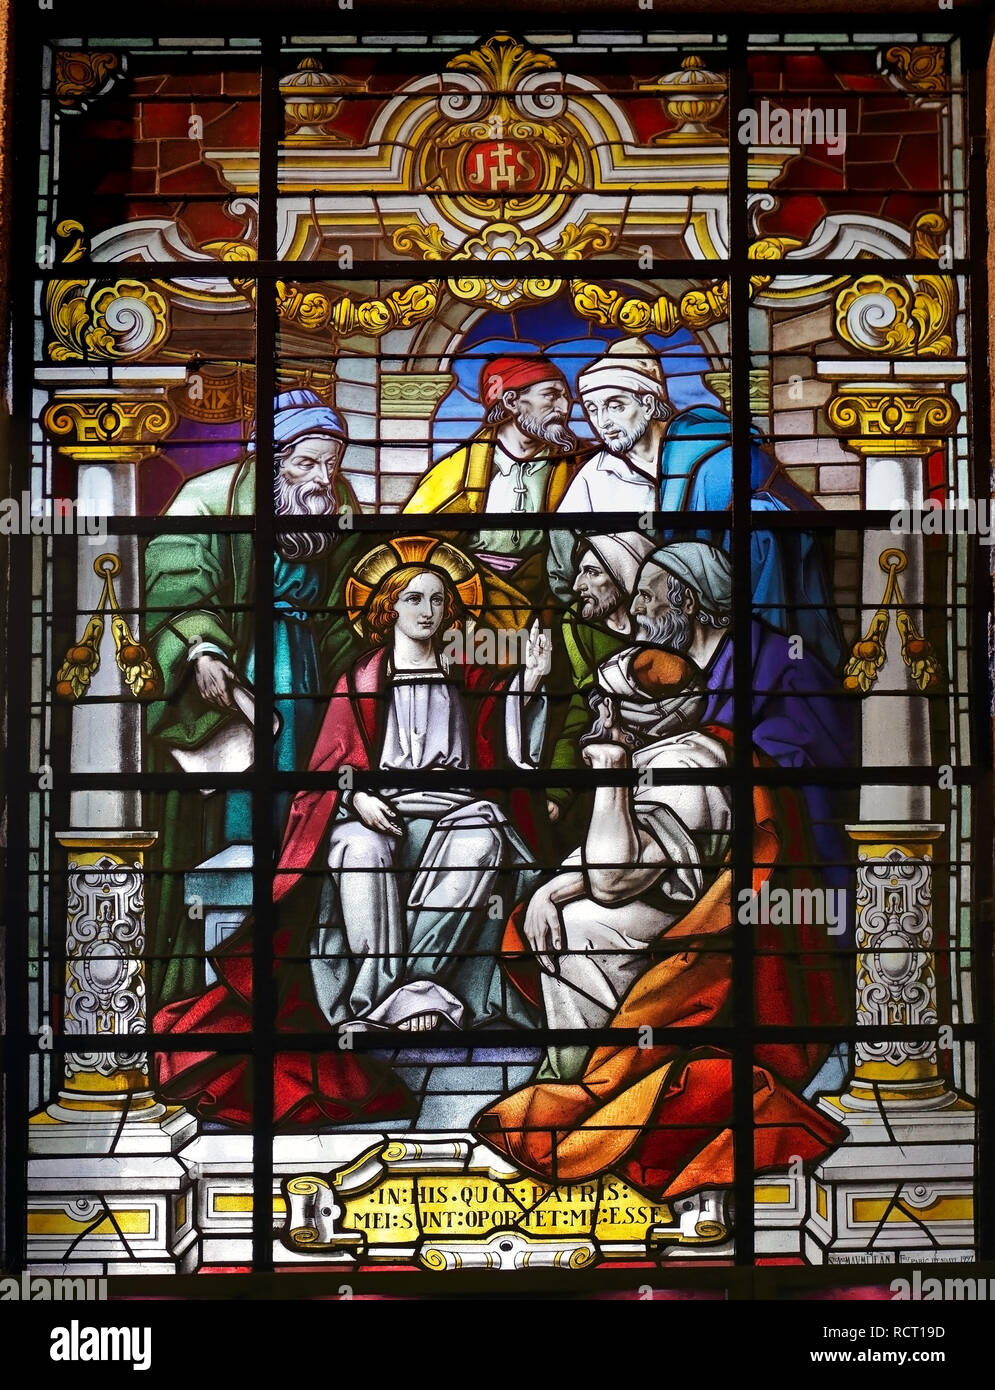 Porto, Portugal - March 23, 2015: Stained glass window from  church of Lapa representing a biblical scene from the New Testament, young Jesus among sc - Stock Image